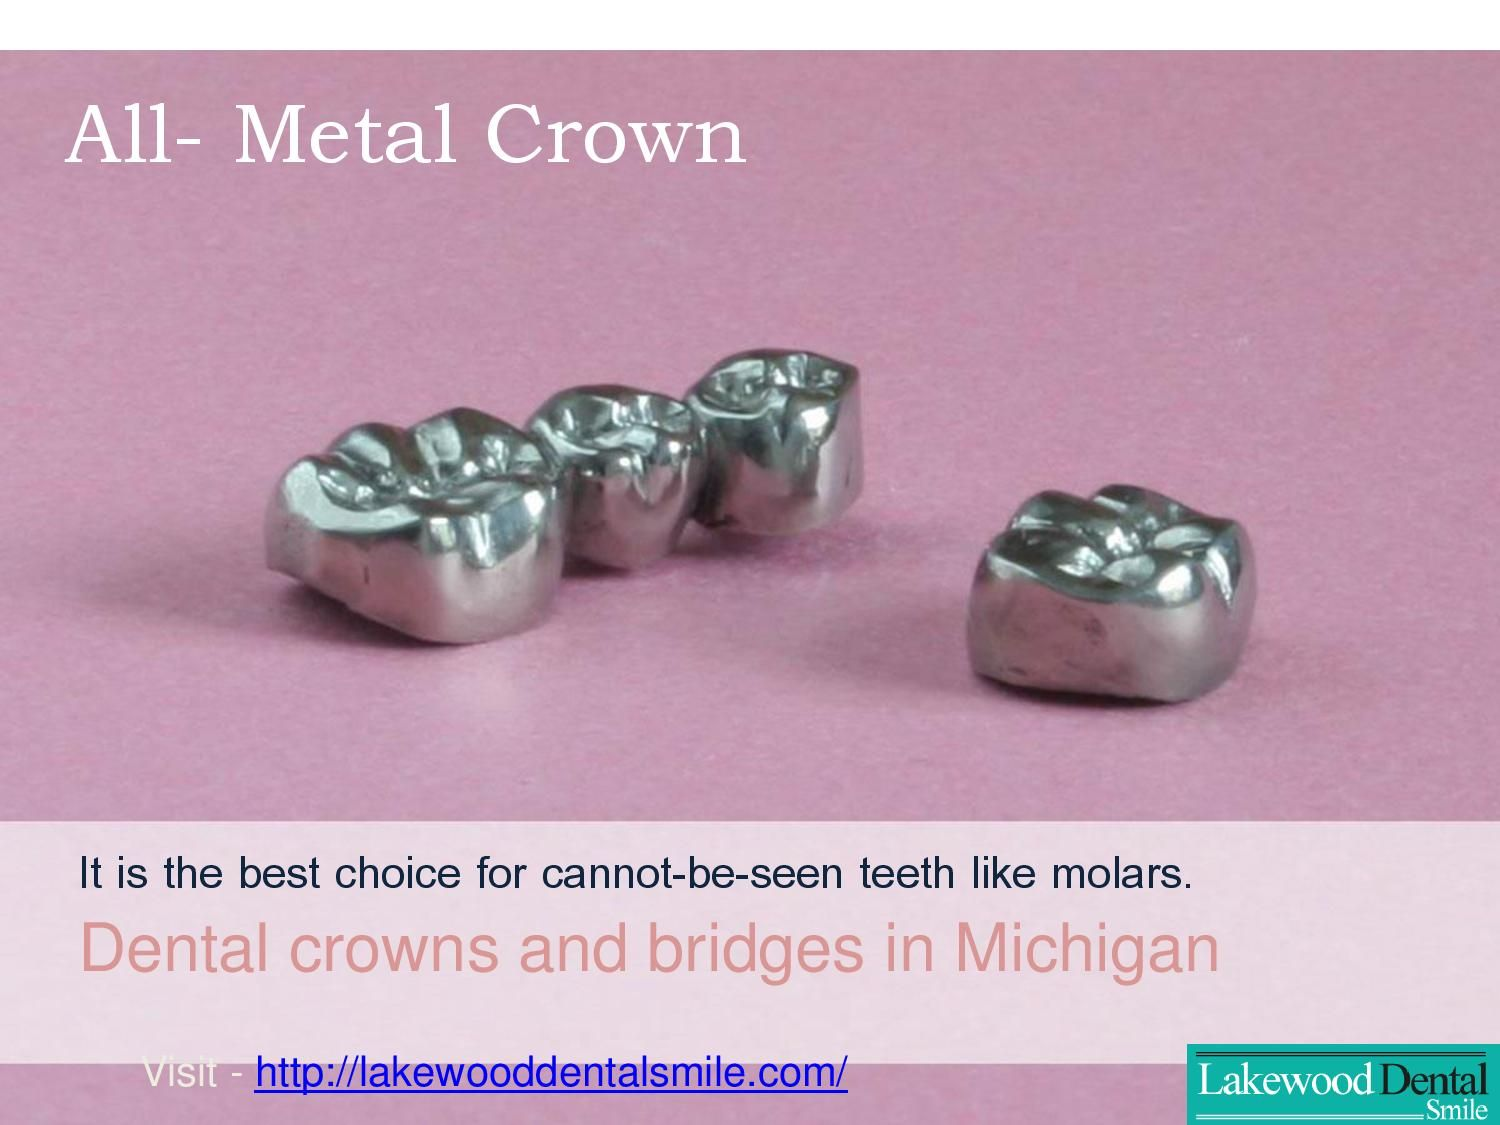 Lakewood Dental Smile offers world class root canal